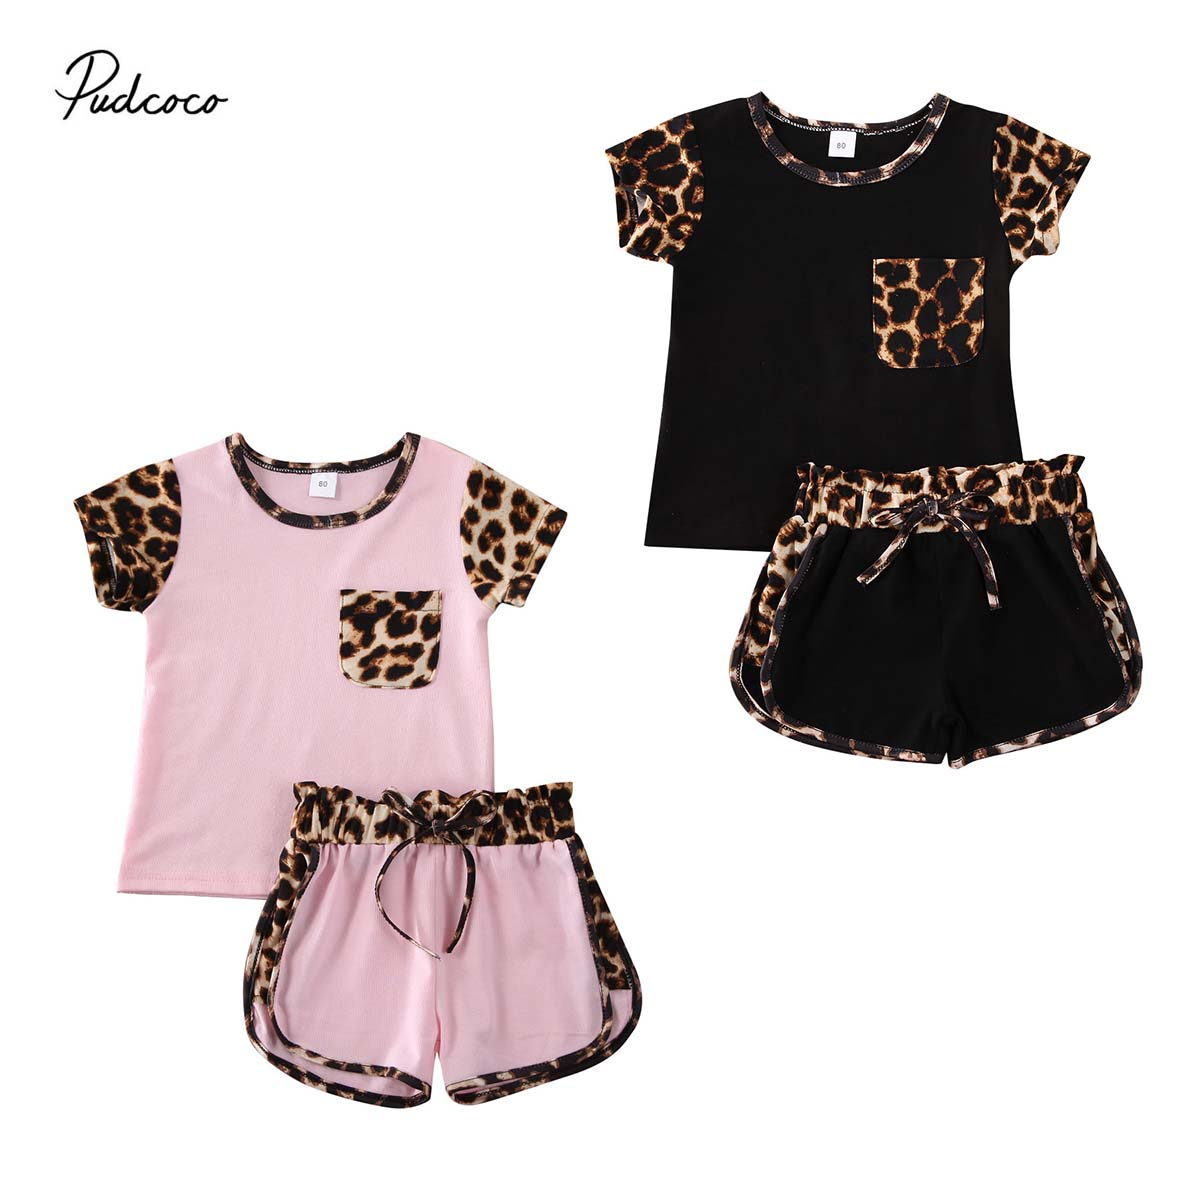 2020 Baby Summer Clothing 1-6Y Toddler Kid Baby Girl Short Sleeve Leopard Tops Shirt Short Pants Outfit Clothes Set 2PCS